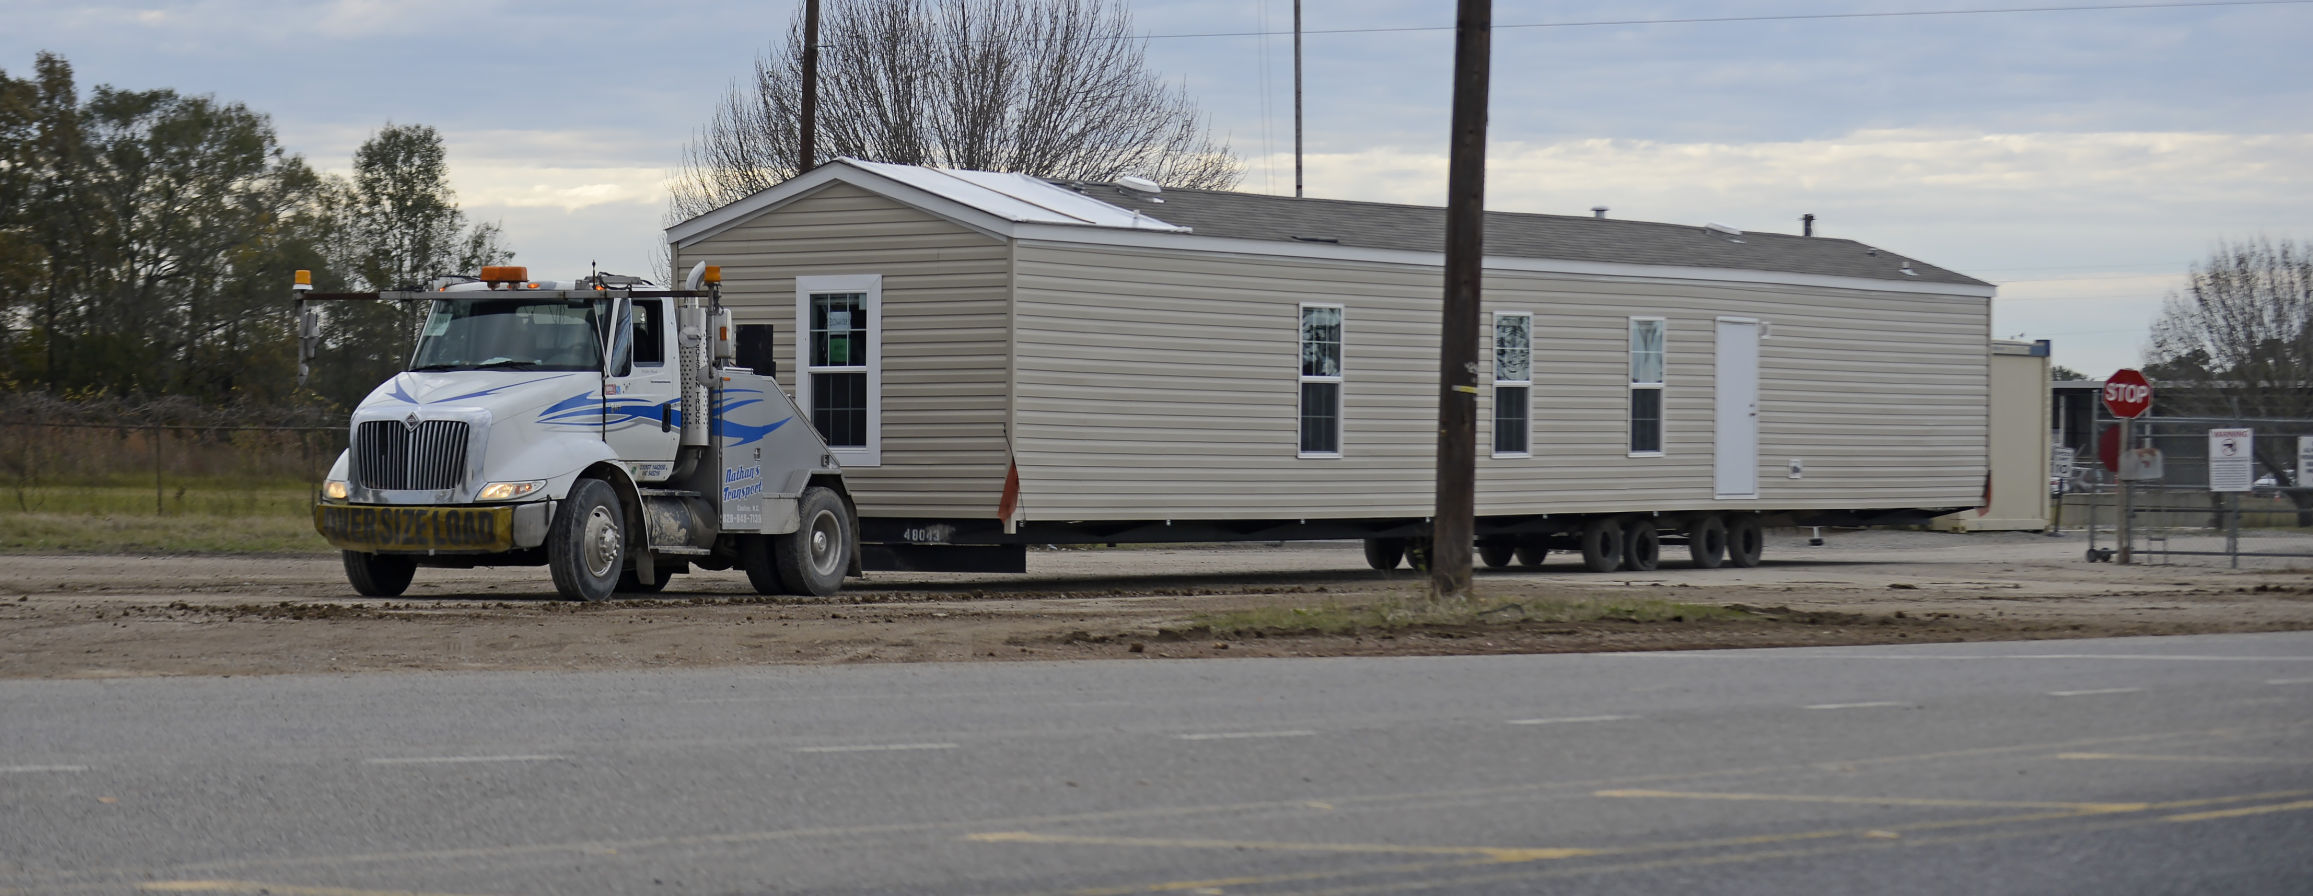 Used Mobile Home Lafayette La Decorating Interior Of Your House